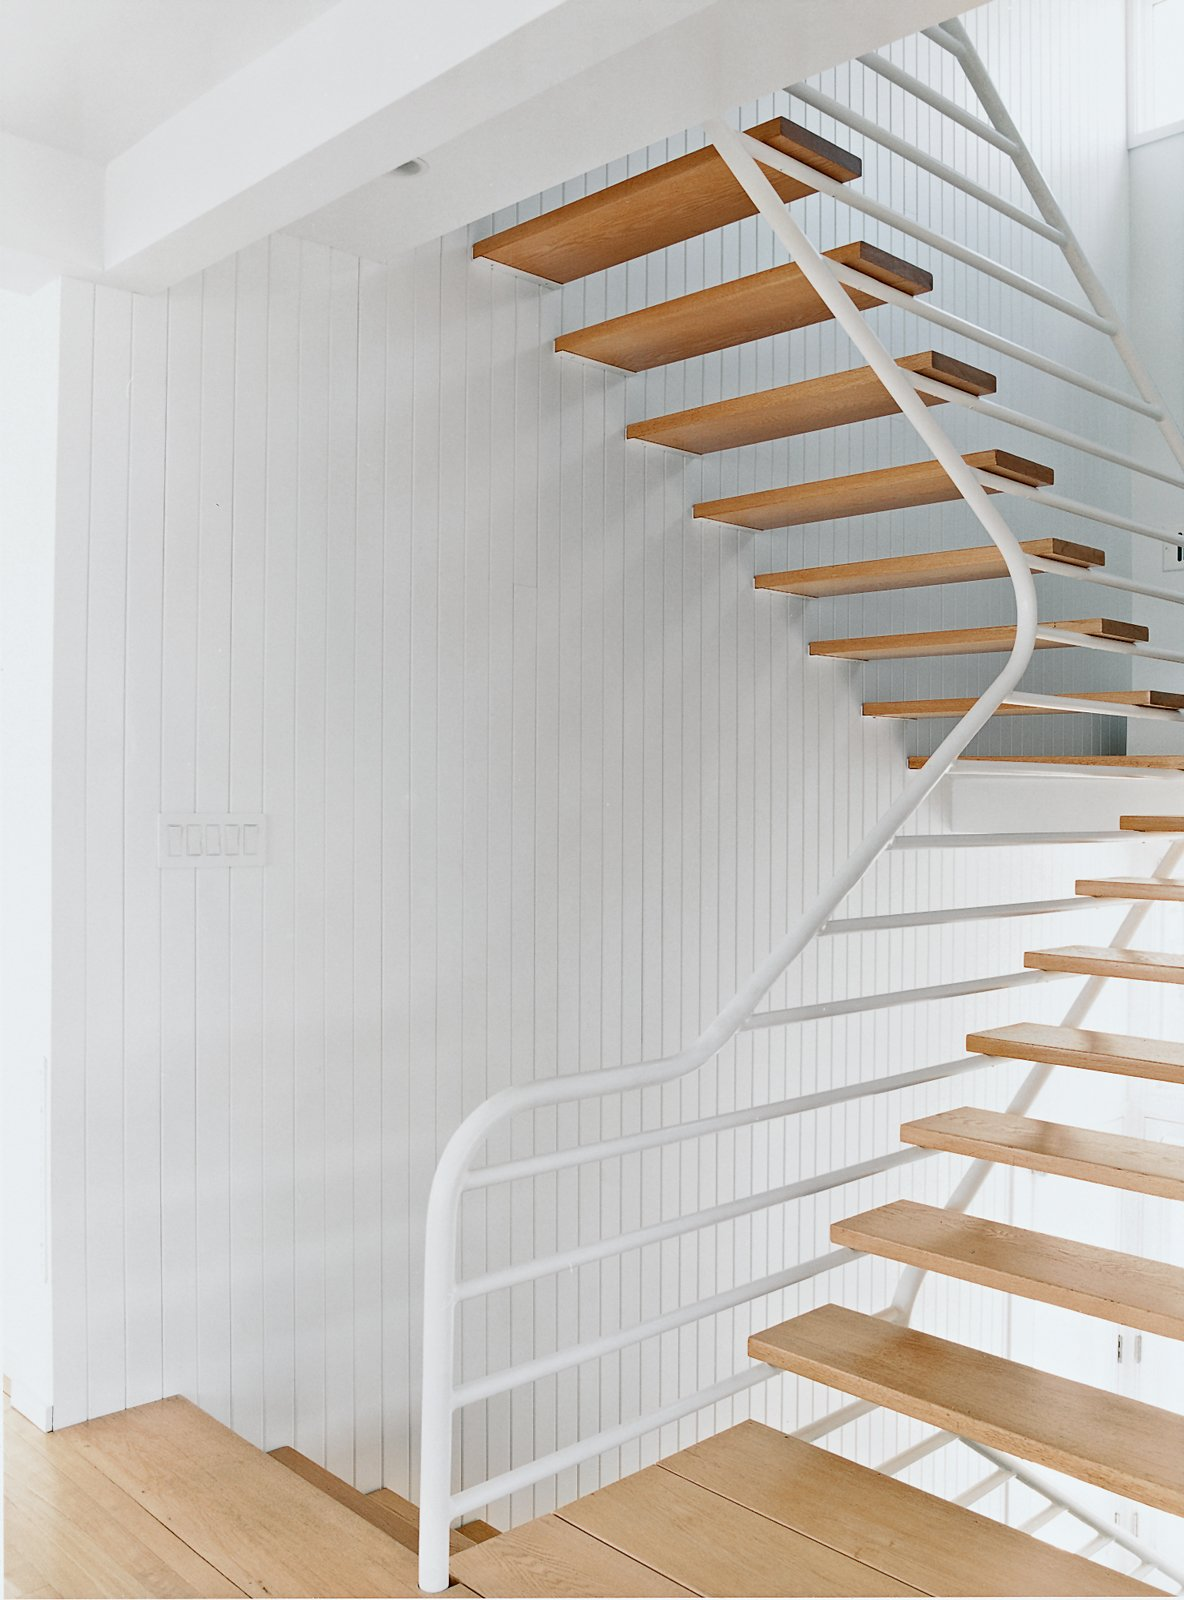 The main staircase consists of simple oak treads that cantilever out from side walls sheathed in natural vertical board and are supported on the other side by a continuous grill-like railing truss.  Photo 3 of 8 in Bauhaus by the Sea